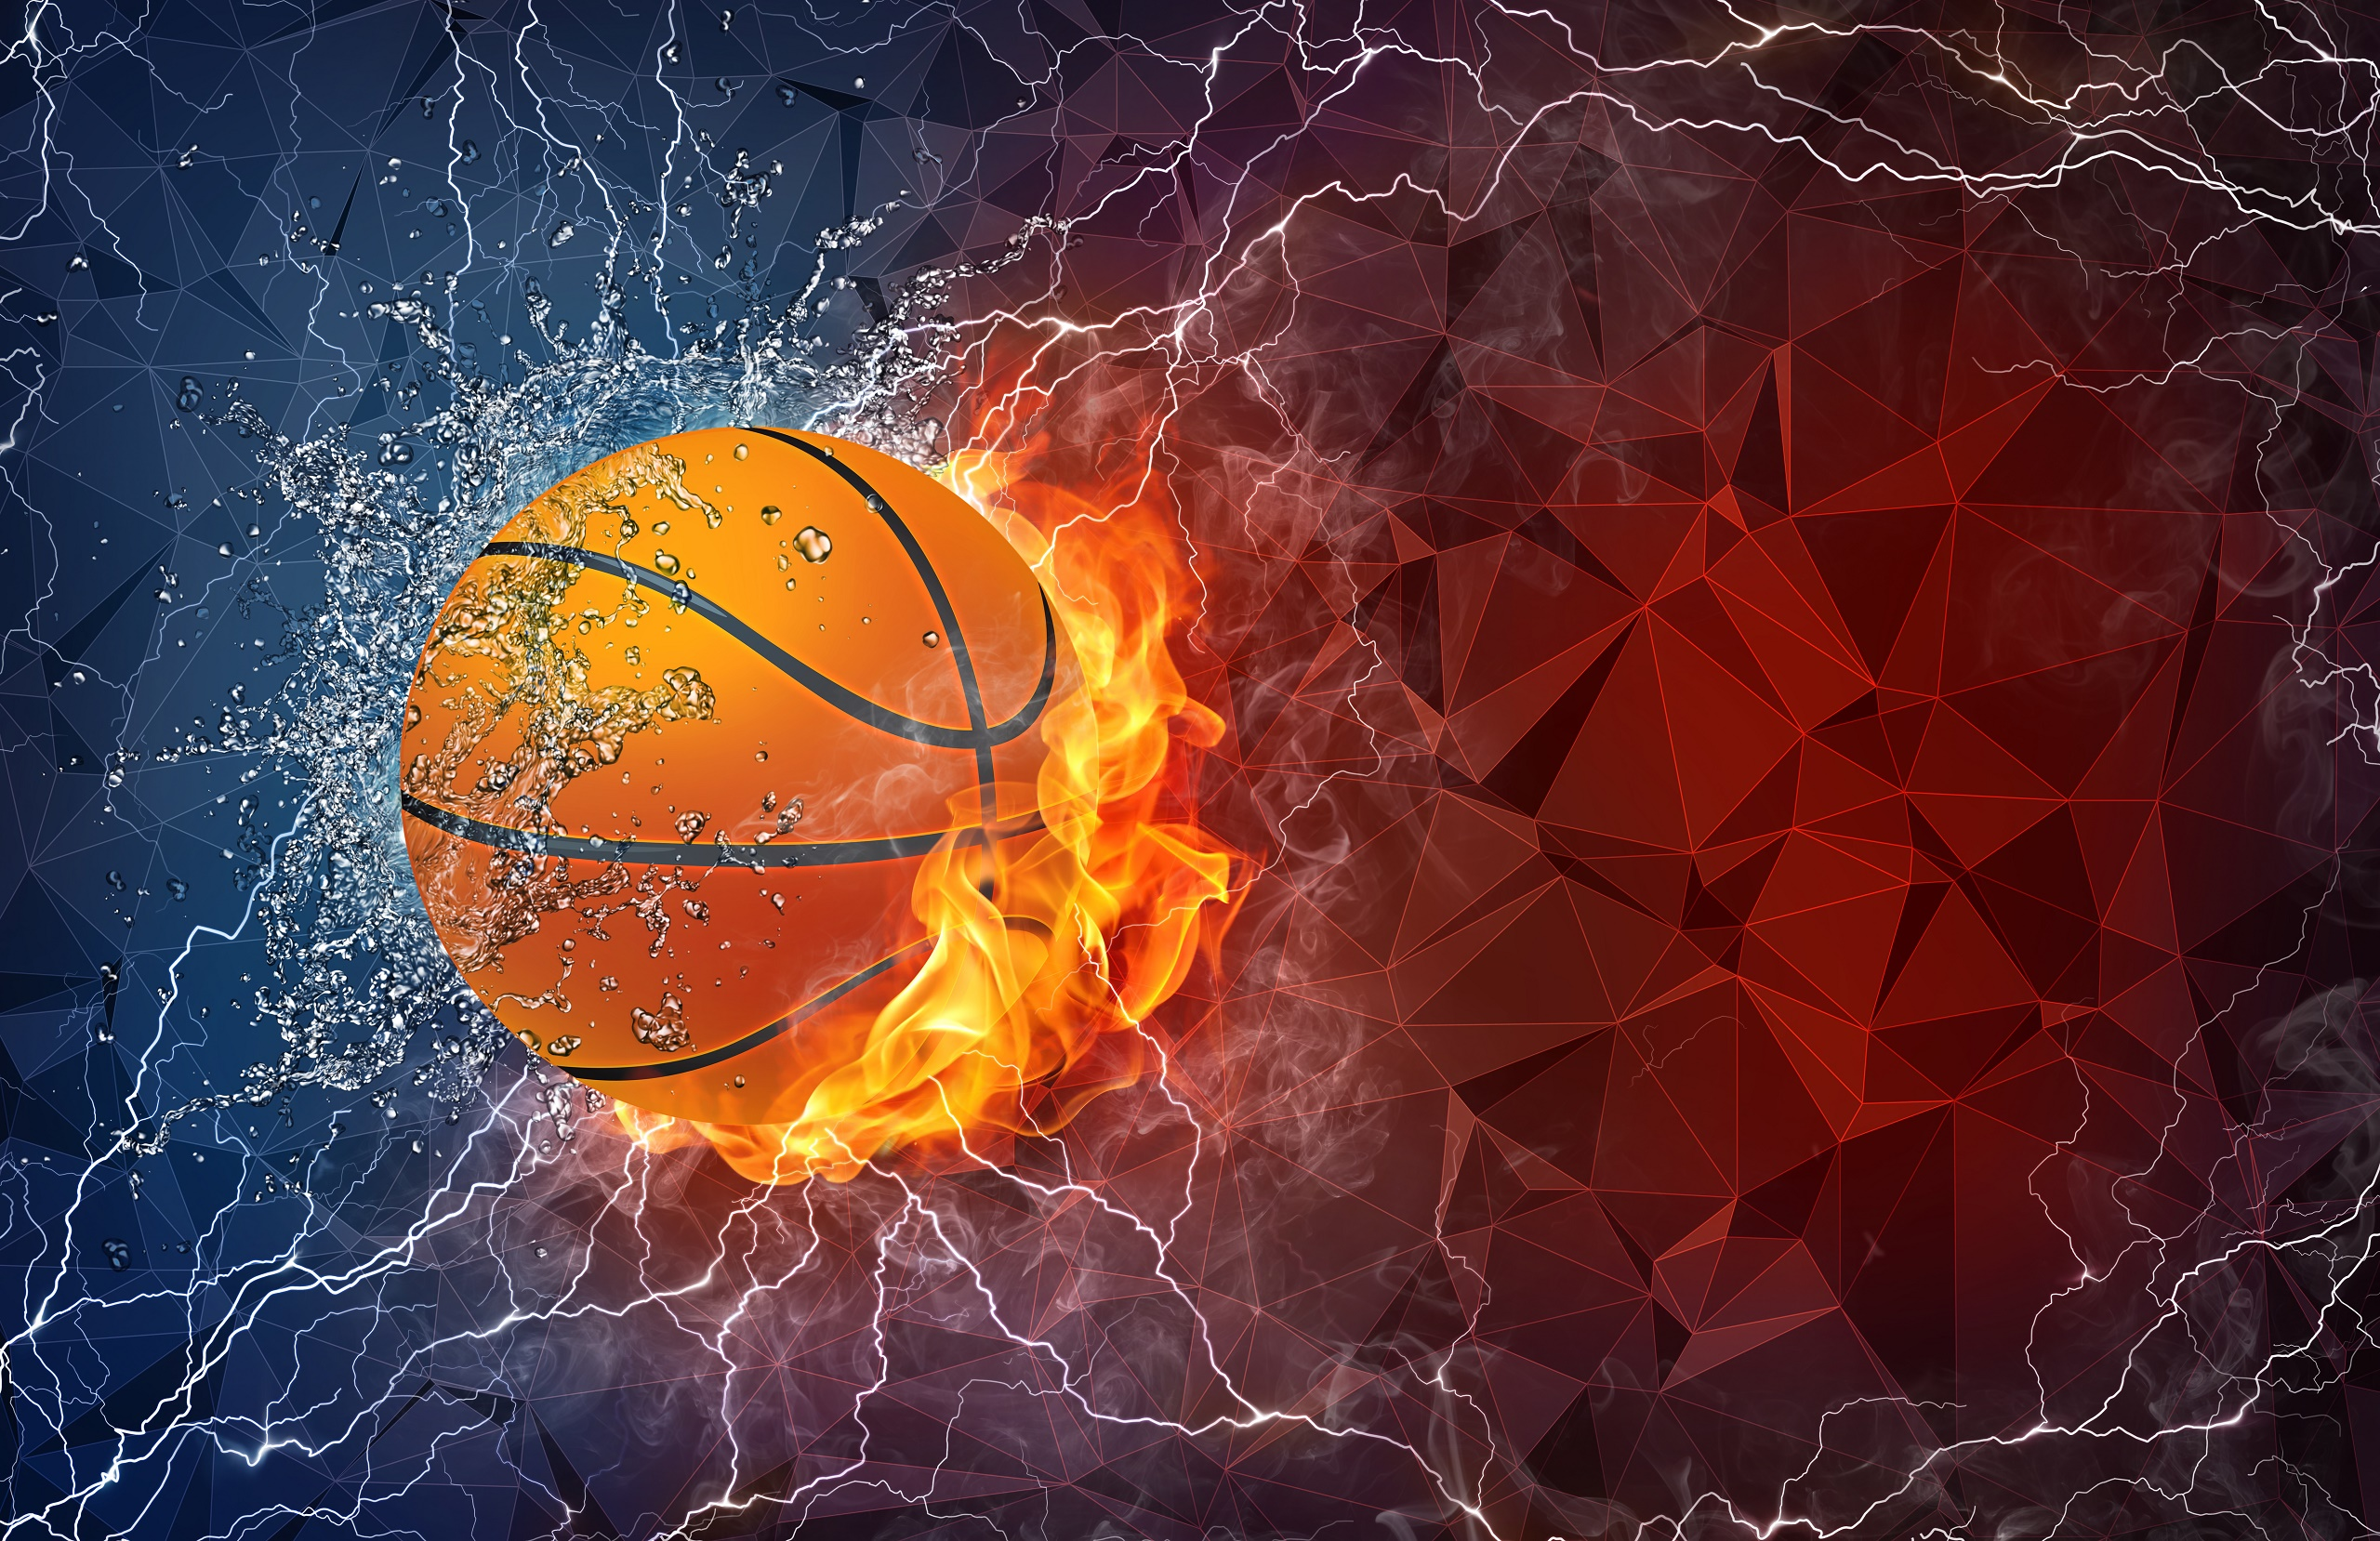 550 Basketball HD Wallpapers   Background Images   Wallpaper Abyss HD Wallpaper   Background Image ID 662367